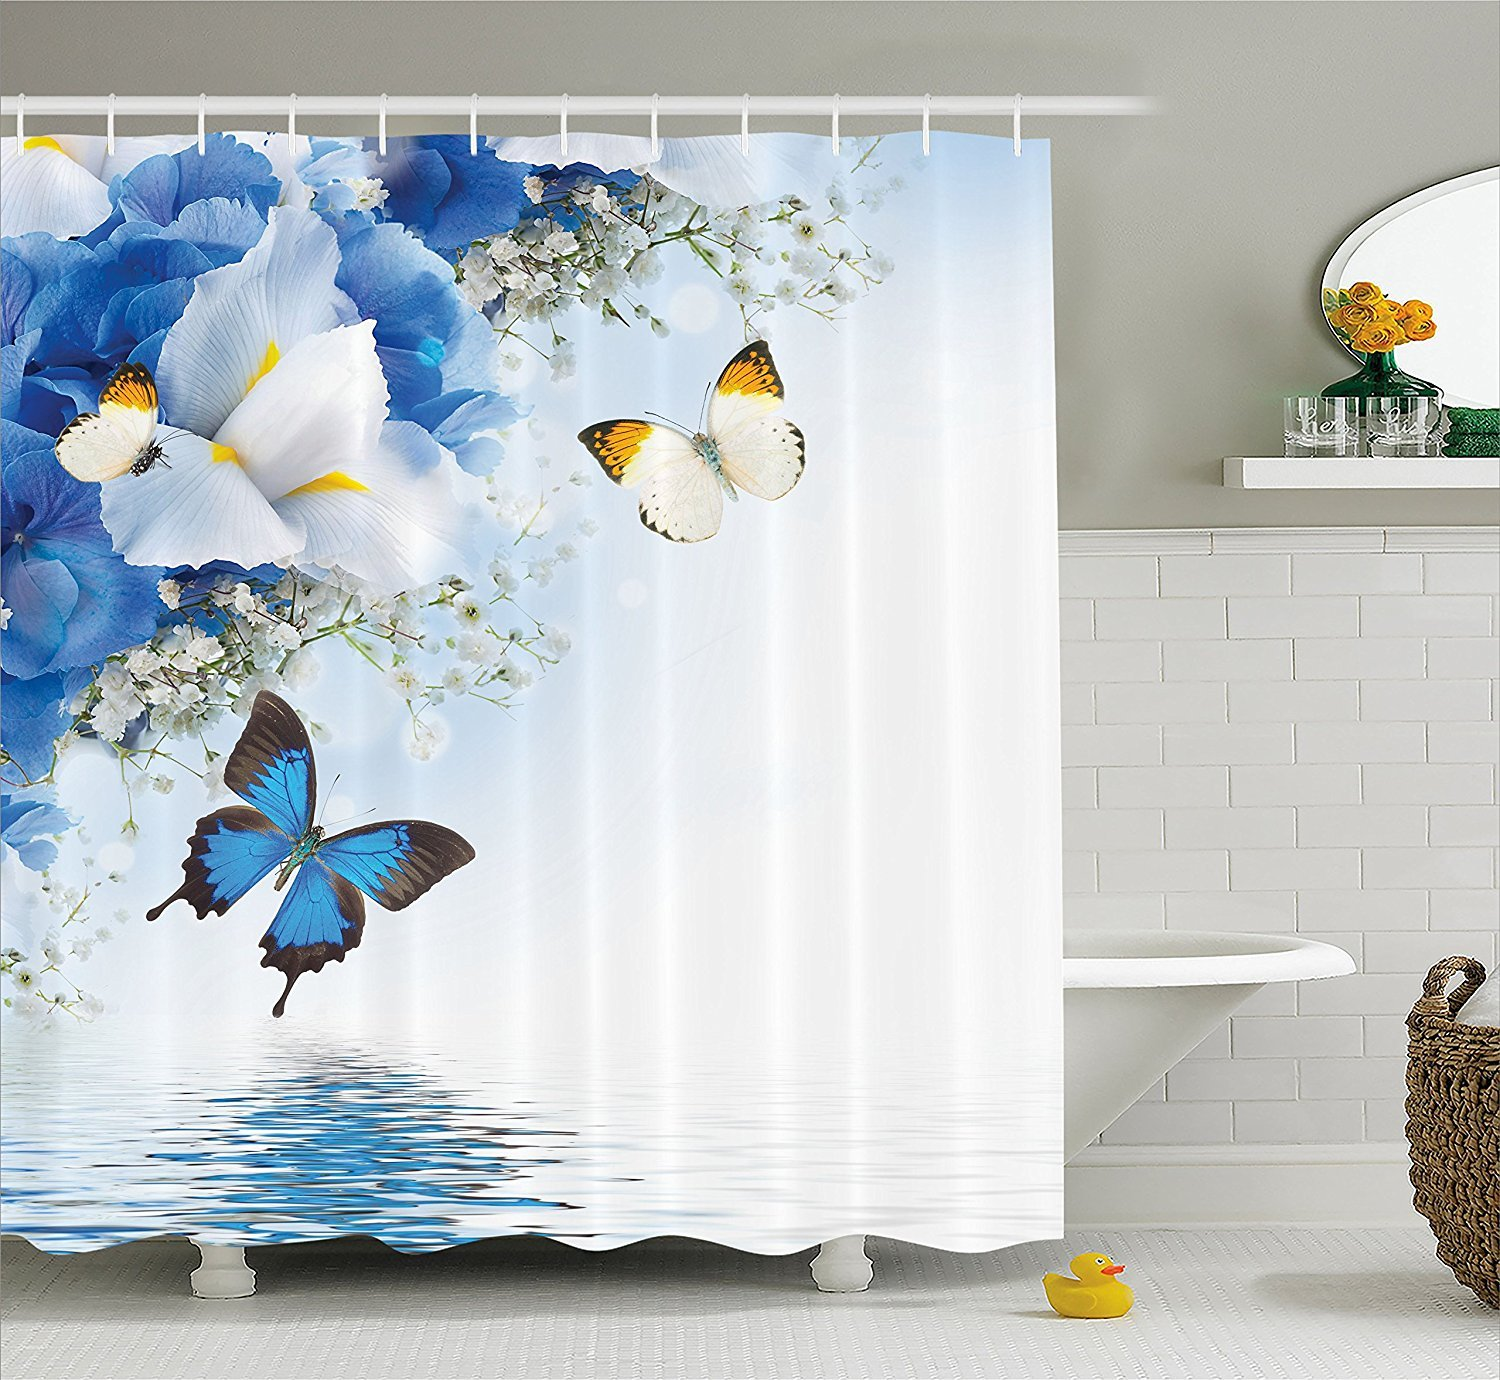 Fabric Shower Curtain 72x72 inches, Resort Spa Home Decor Blue White Wild Flowers Monarch Yellow Butterflies Theme Lily Therapy Zen Reflection Floral Bathroom Lake House Decor Art Prints Design